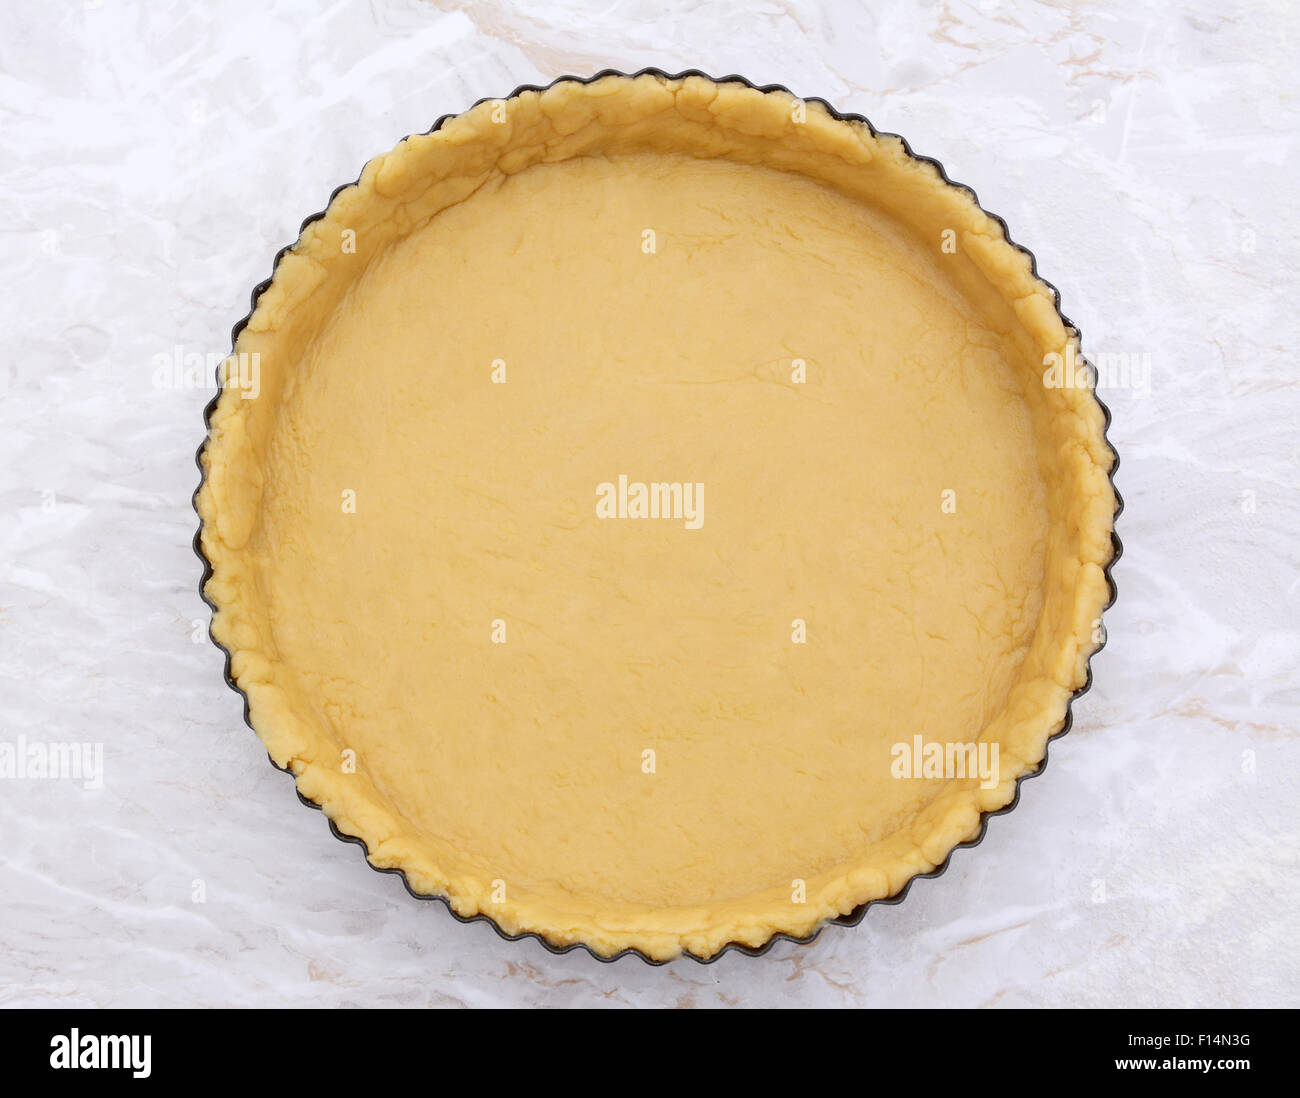 Circular metal flan tin lined with shortcrust pastry on a kitchen work surface - Stock Image